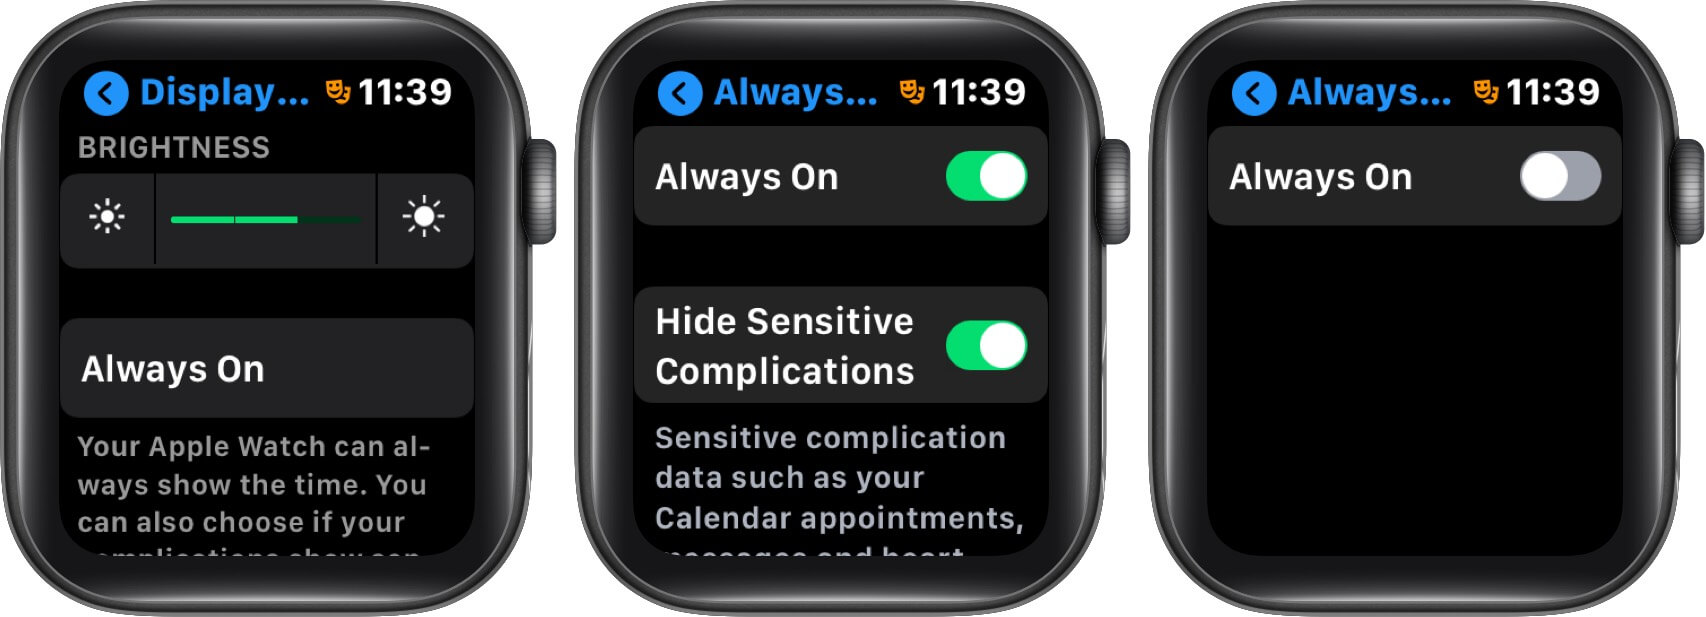 always turn off the Apple Watch